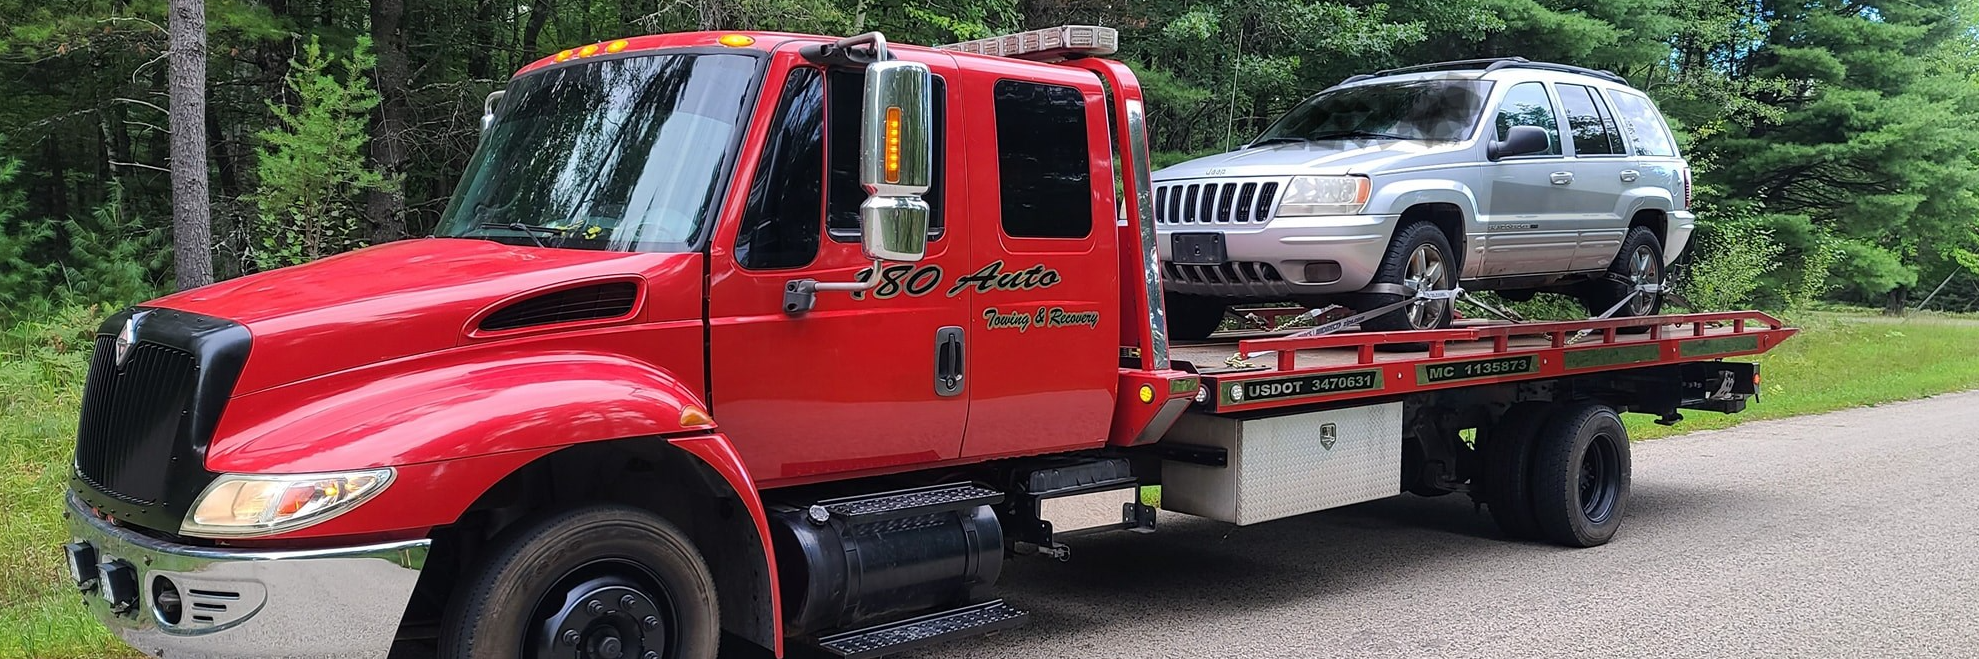 180 auto towing and recovery  Towing.com Profile Banner